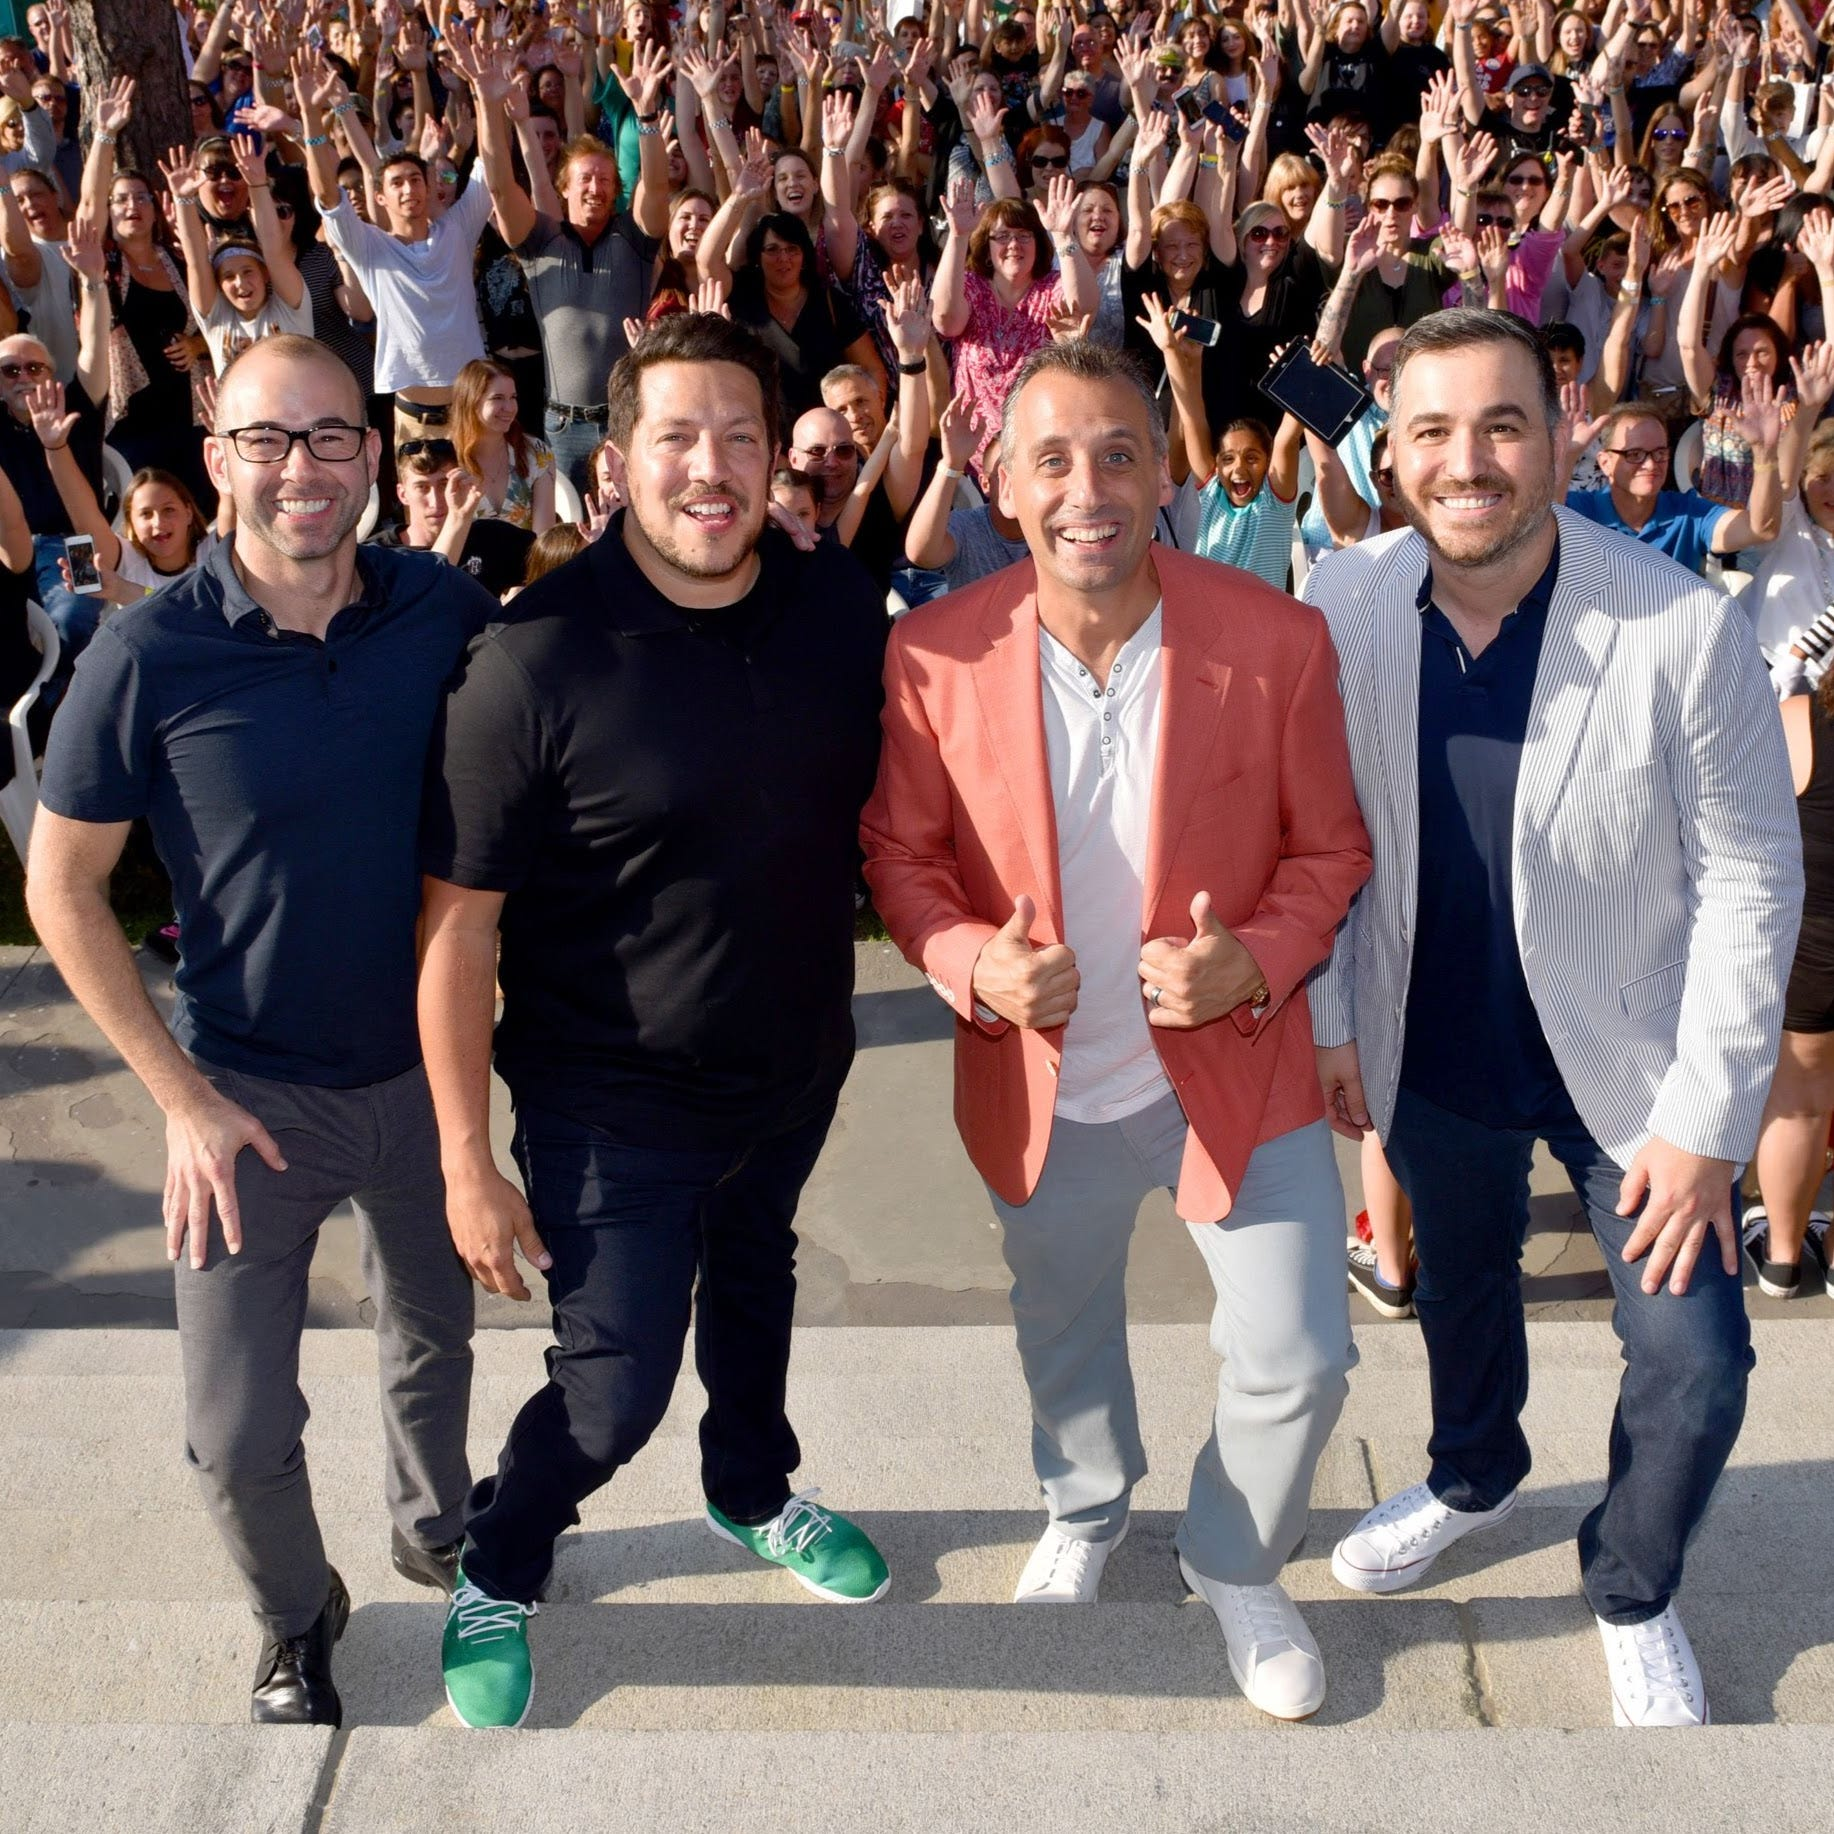 'Impractical Jokers' cast joins summer lineup at Ruoff Home Mortgage Music Center